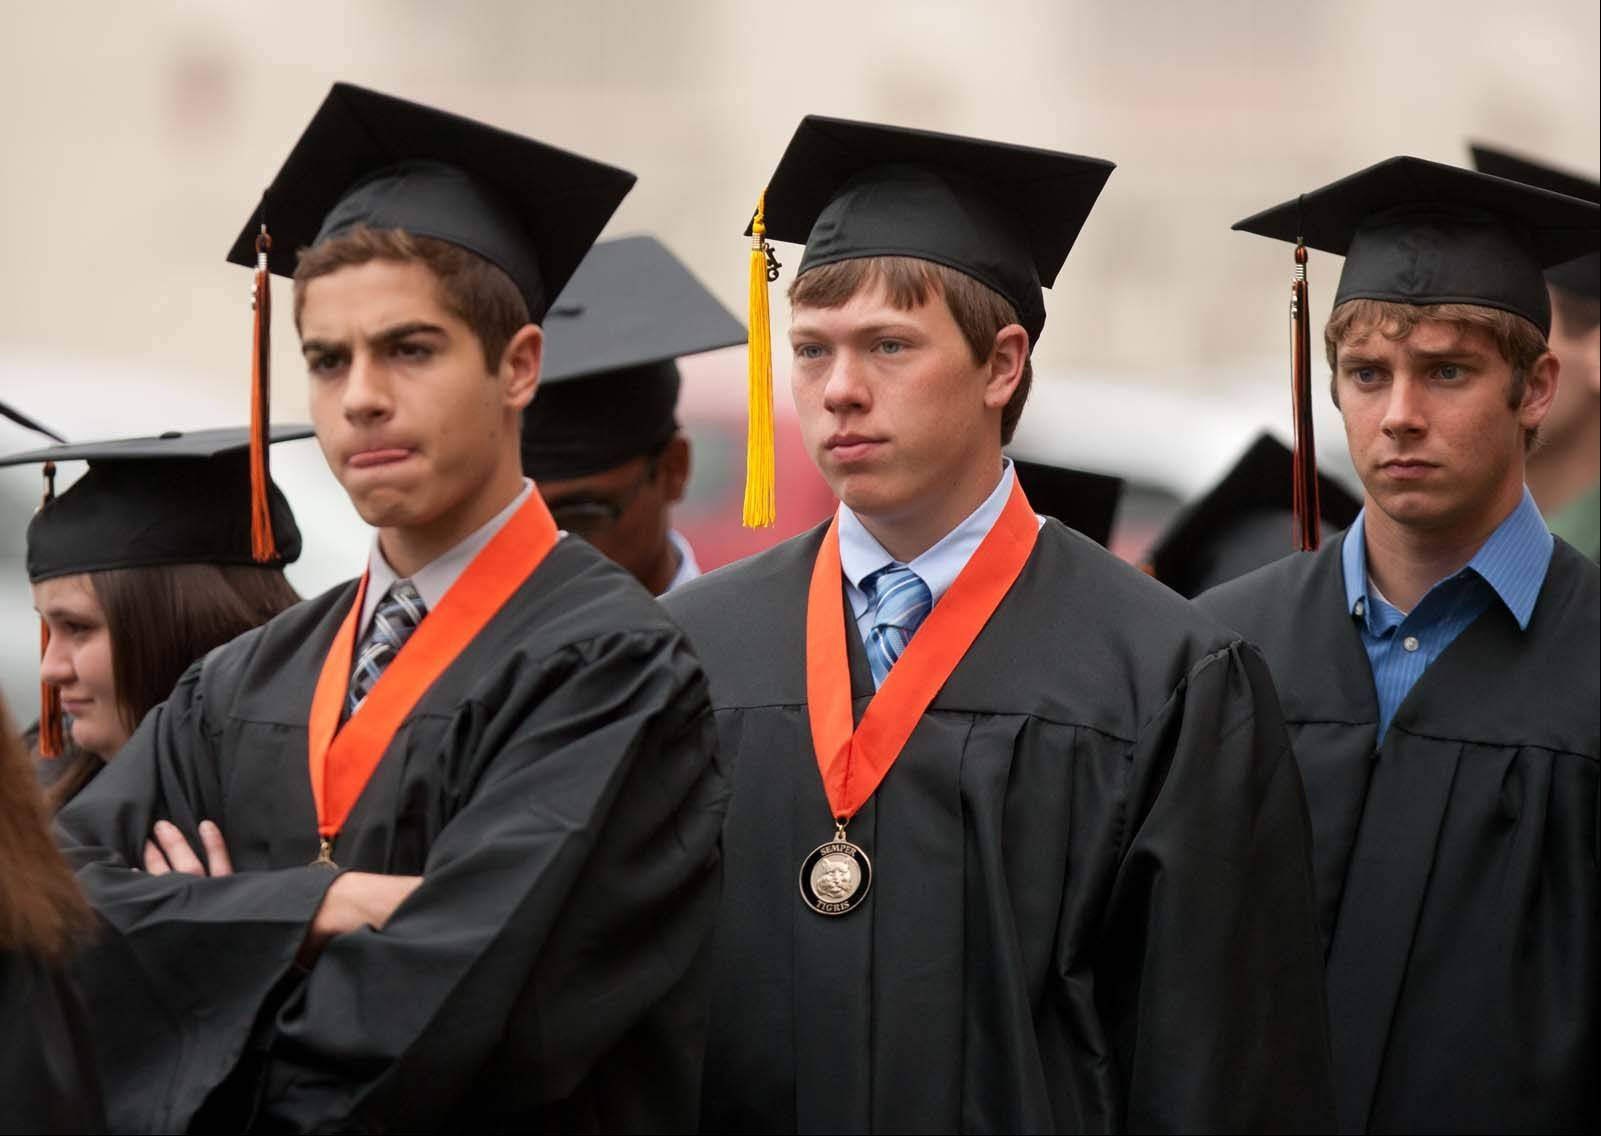 Images from the Wheaton Warrenville South High School graduation on Saturday, May 25 at North Central College in Naperville.